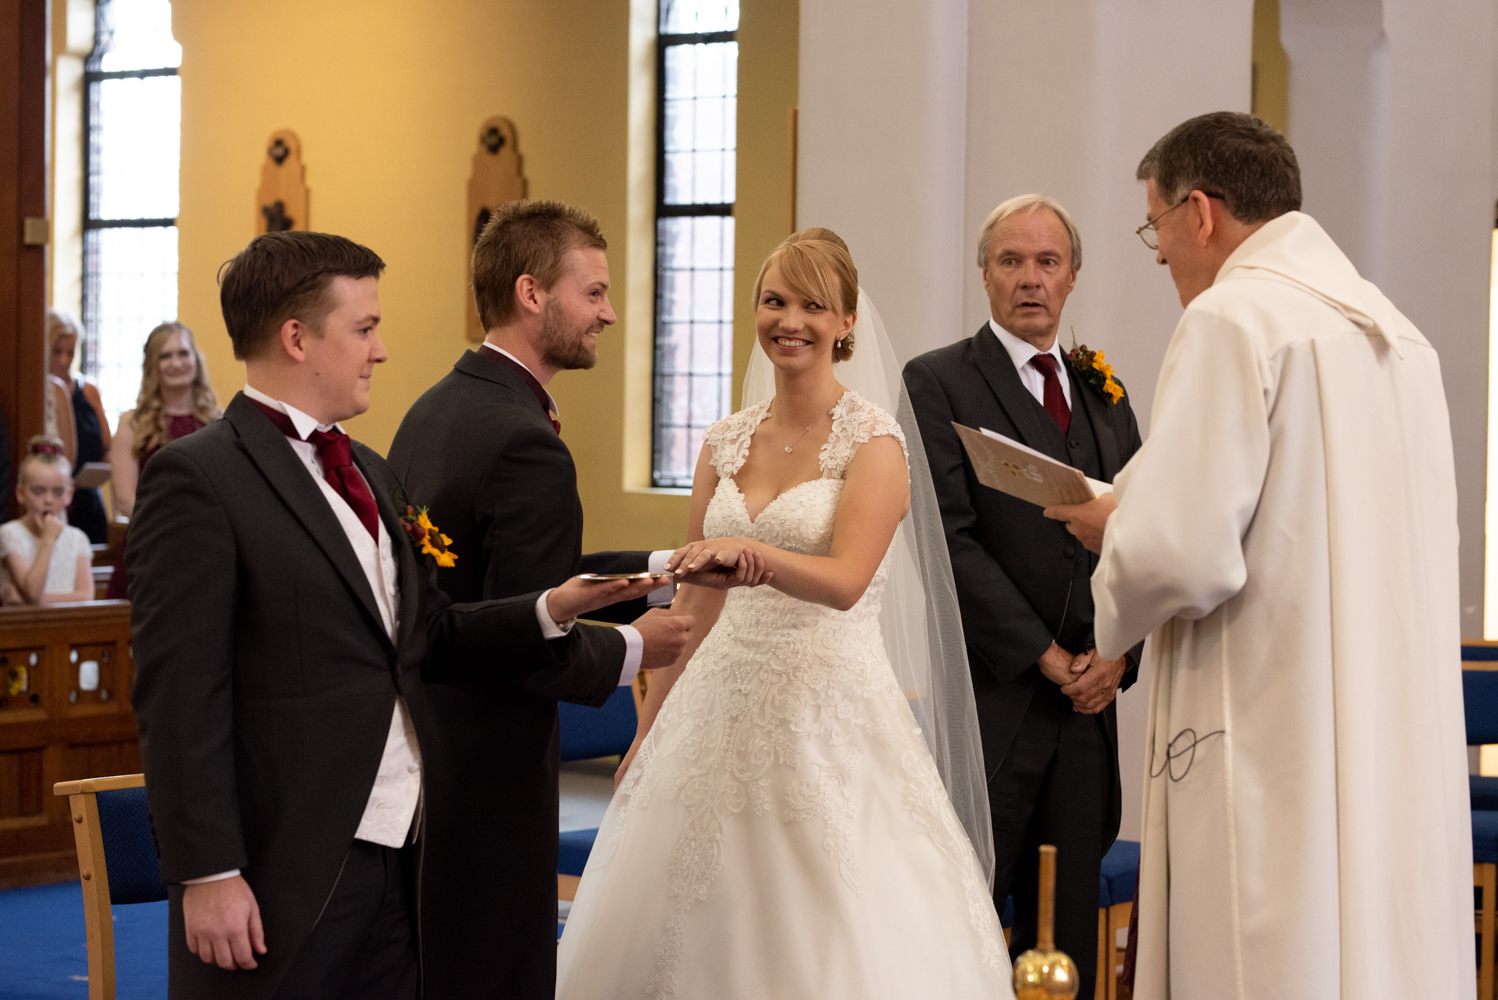 The bride and groom have a laugh during the exchange of wedding rings